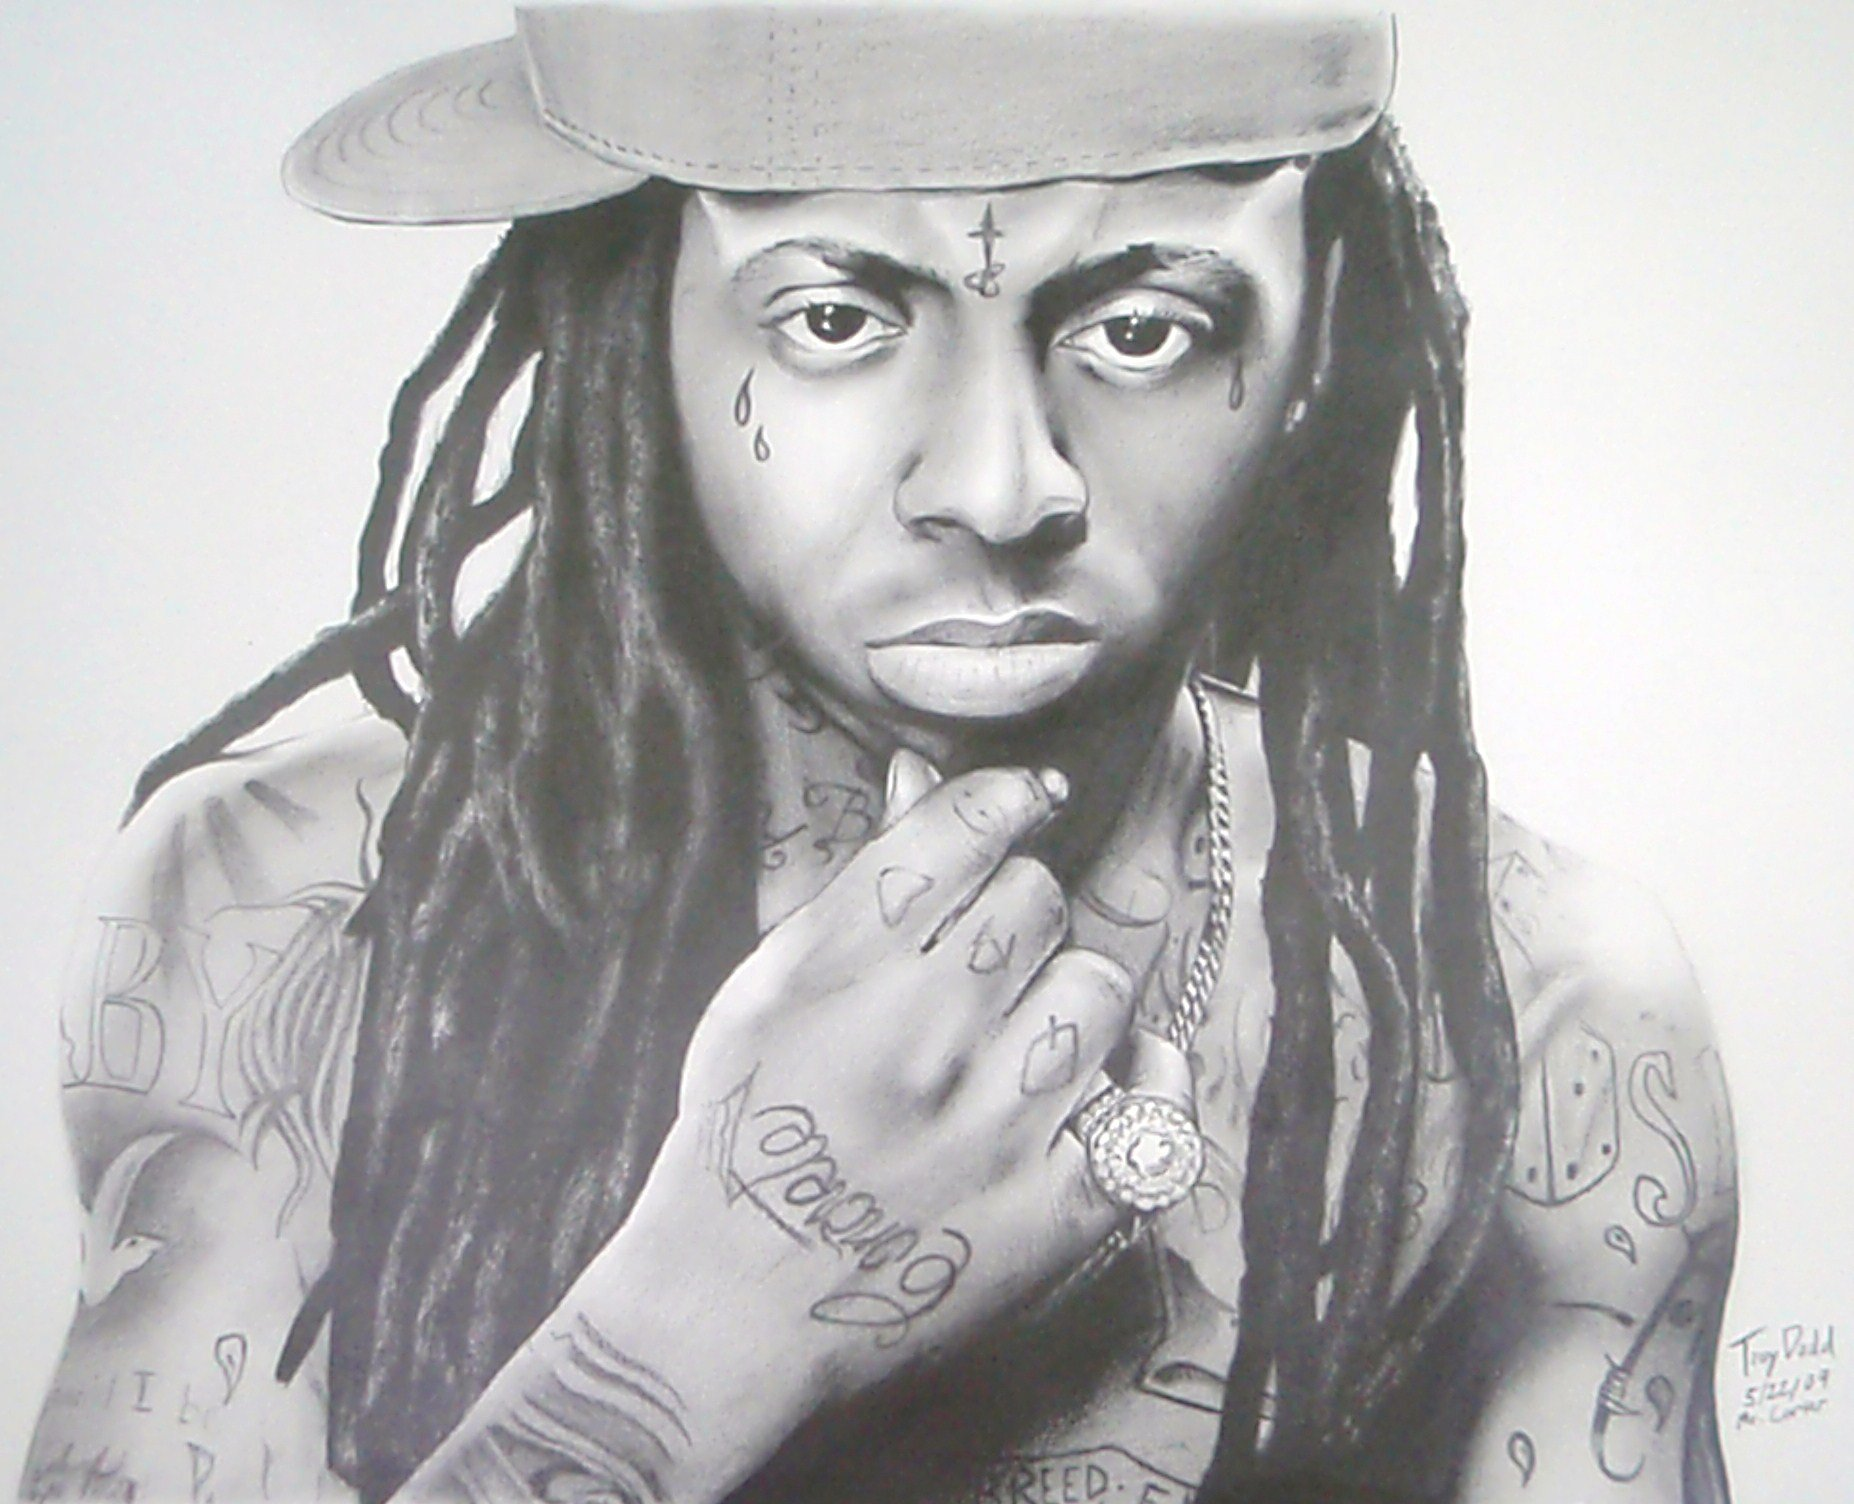 Drawn pice lil wayne Drawing P Wayne Lil In